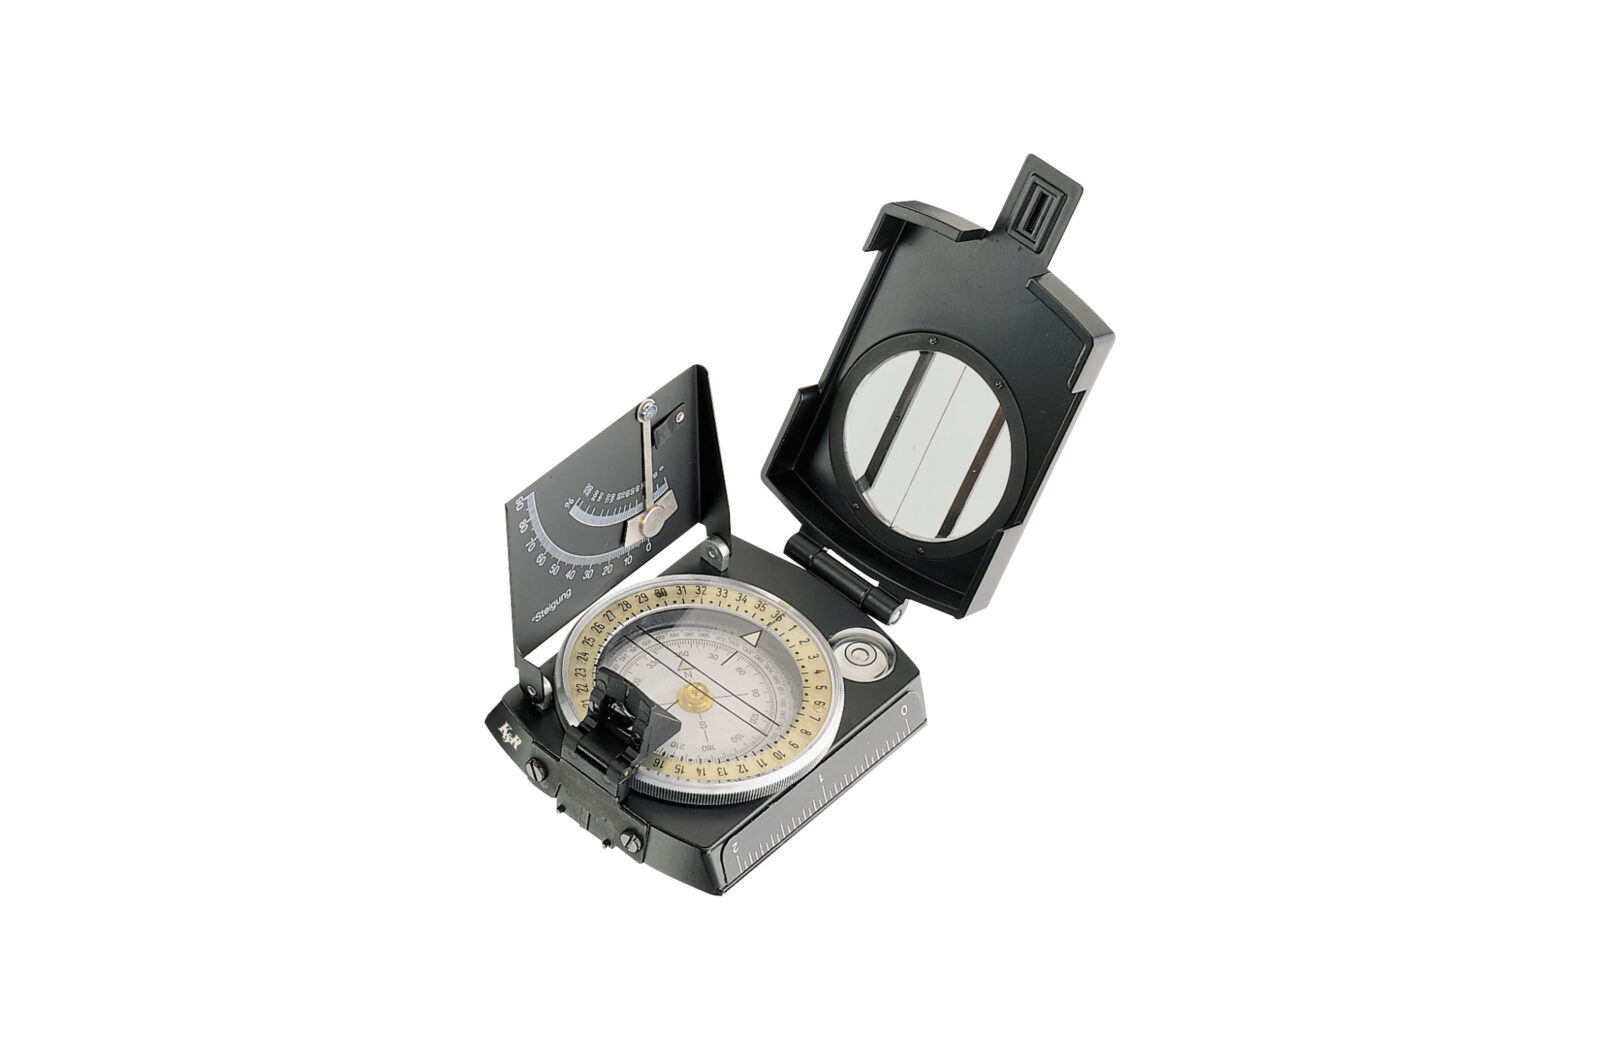 KR Meridian PRO Professional Sighting Compass 1600x1051 - Kasper & Richter Meridian Professional Sighting Compass